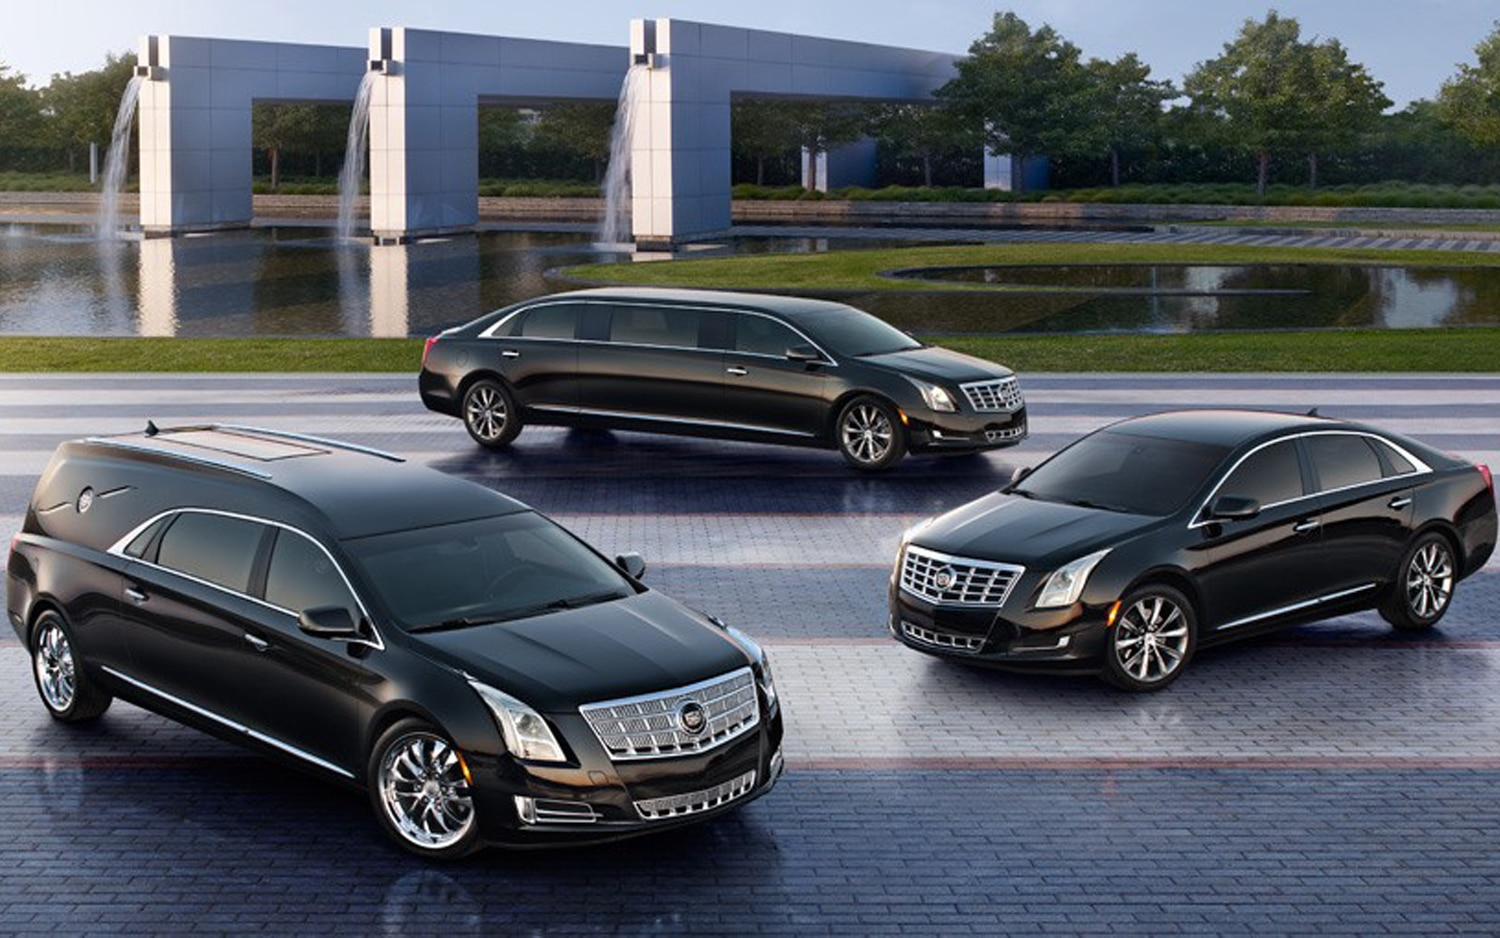 2013 Cadillac XTS Livery Sedan Limousine Funeral Coach